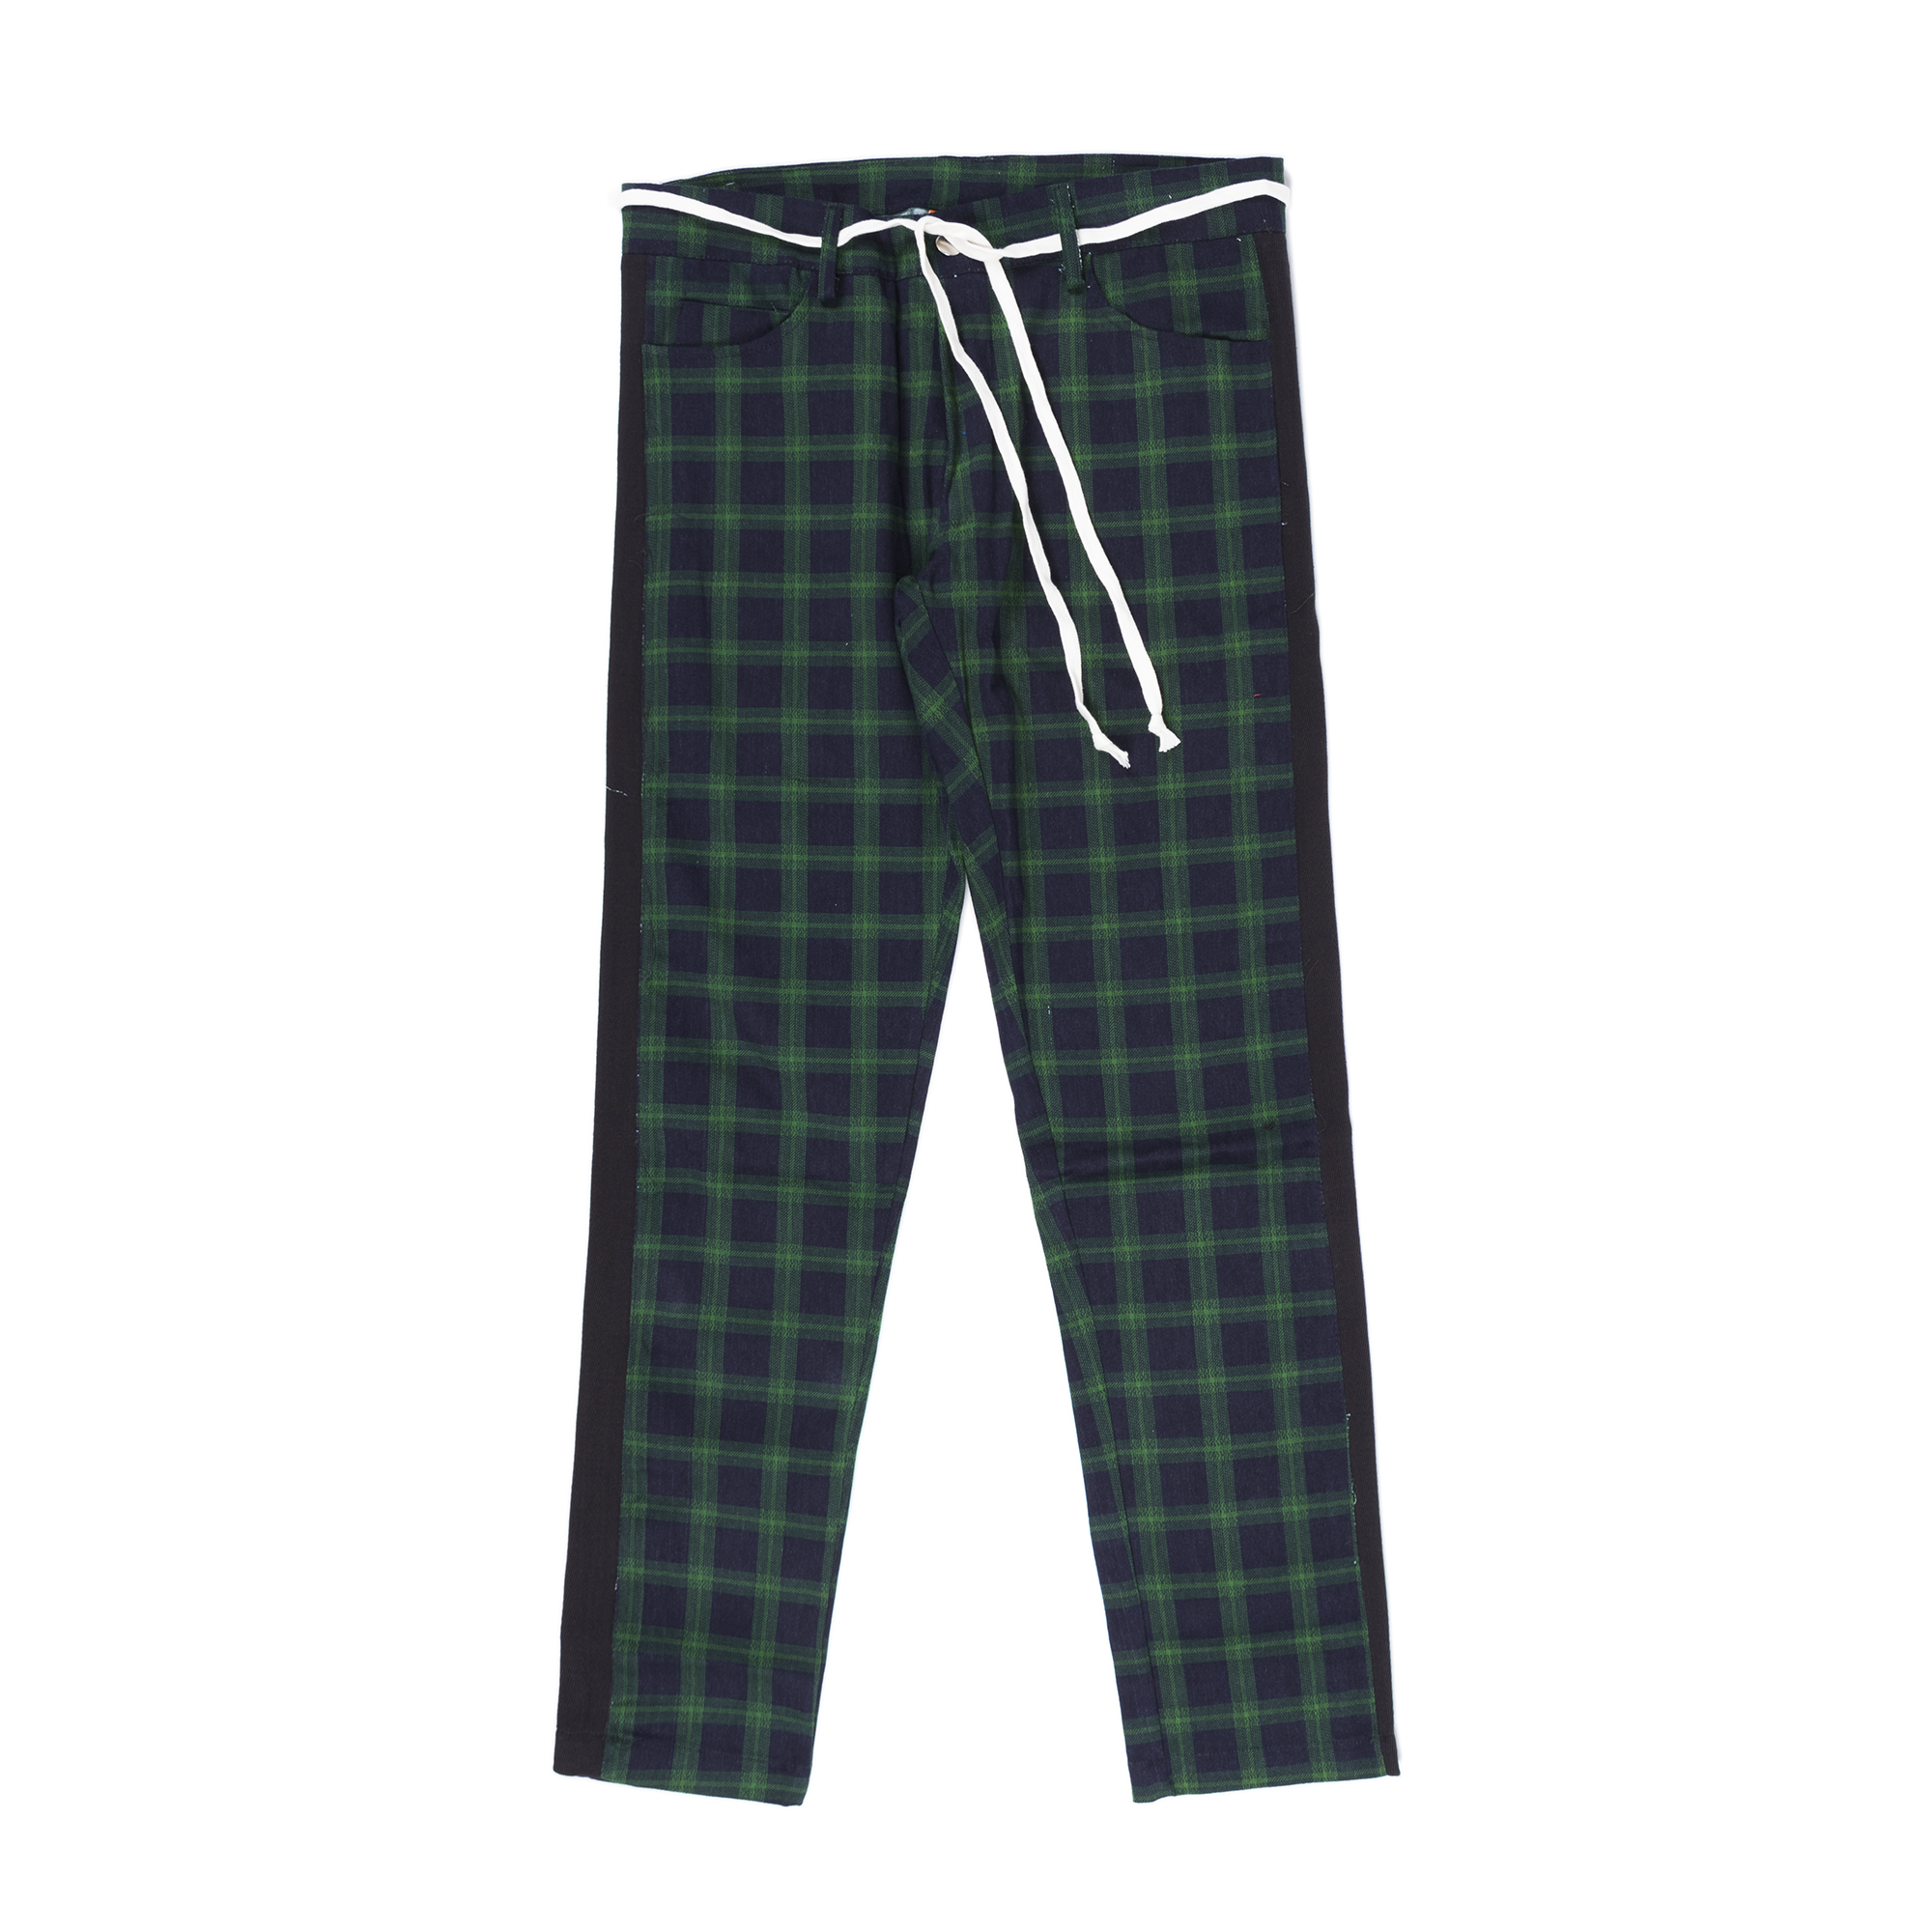 CHECKERED TROUSERS IN DARK GREEN / BLUE WITH STRIPES